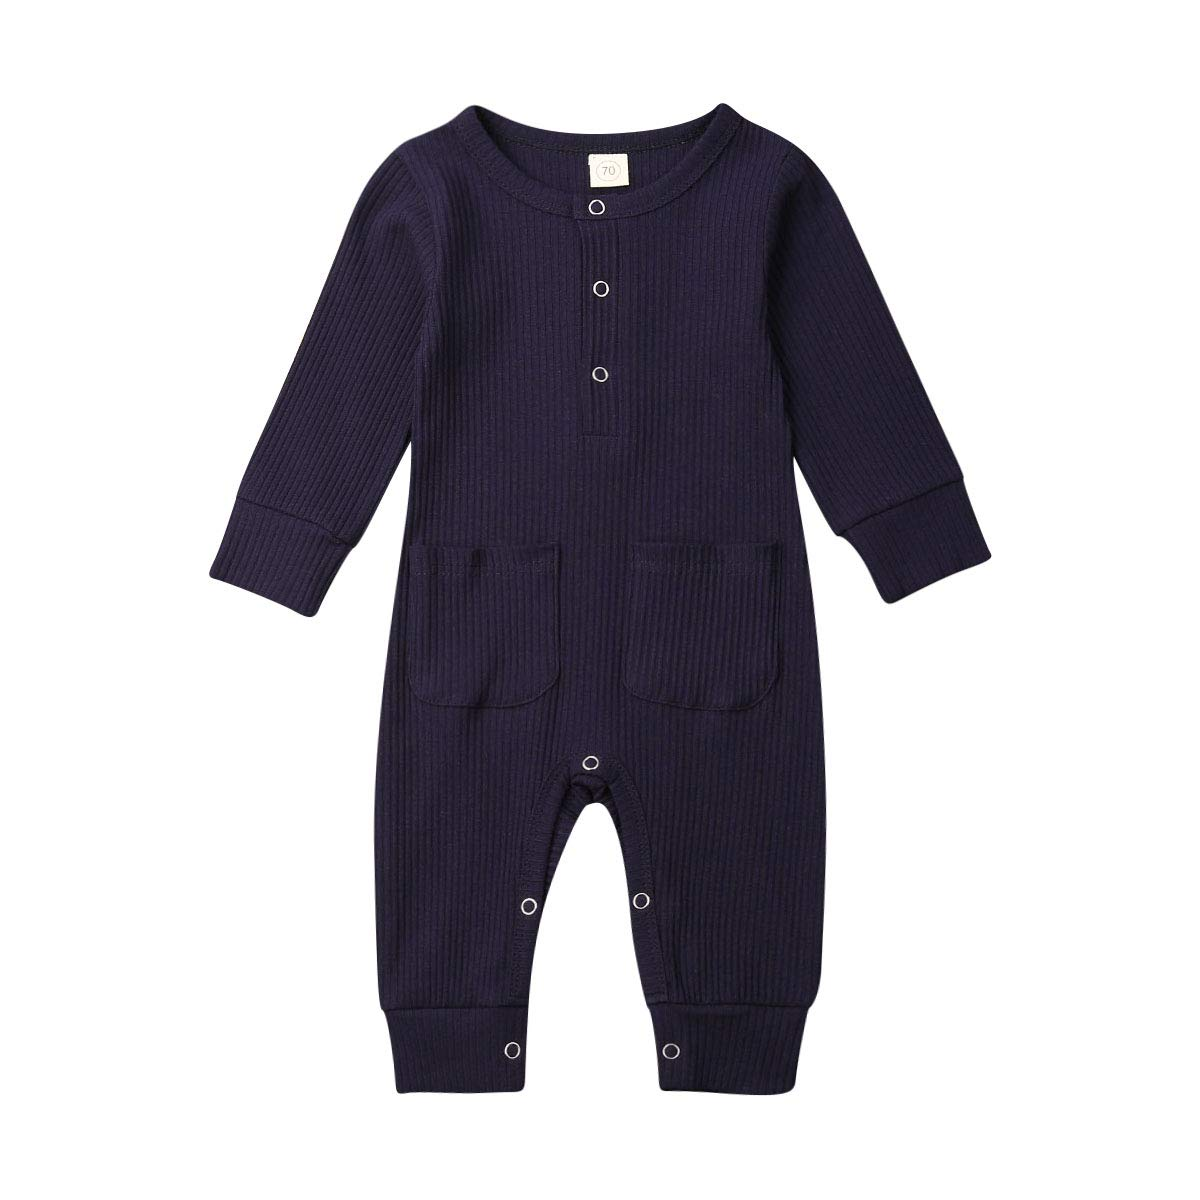 LddcryMbb Newborn Baby Boys Girls One-Piece Romper Long Sleeve Jumpsuit Bodysuit Clothes for 0-24Months